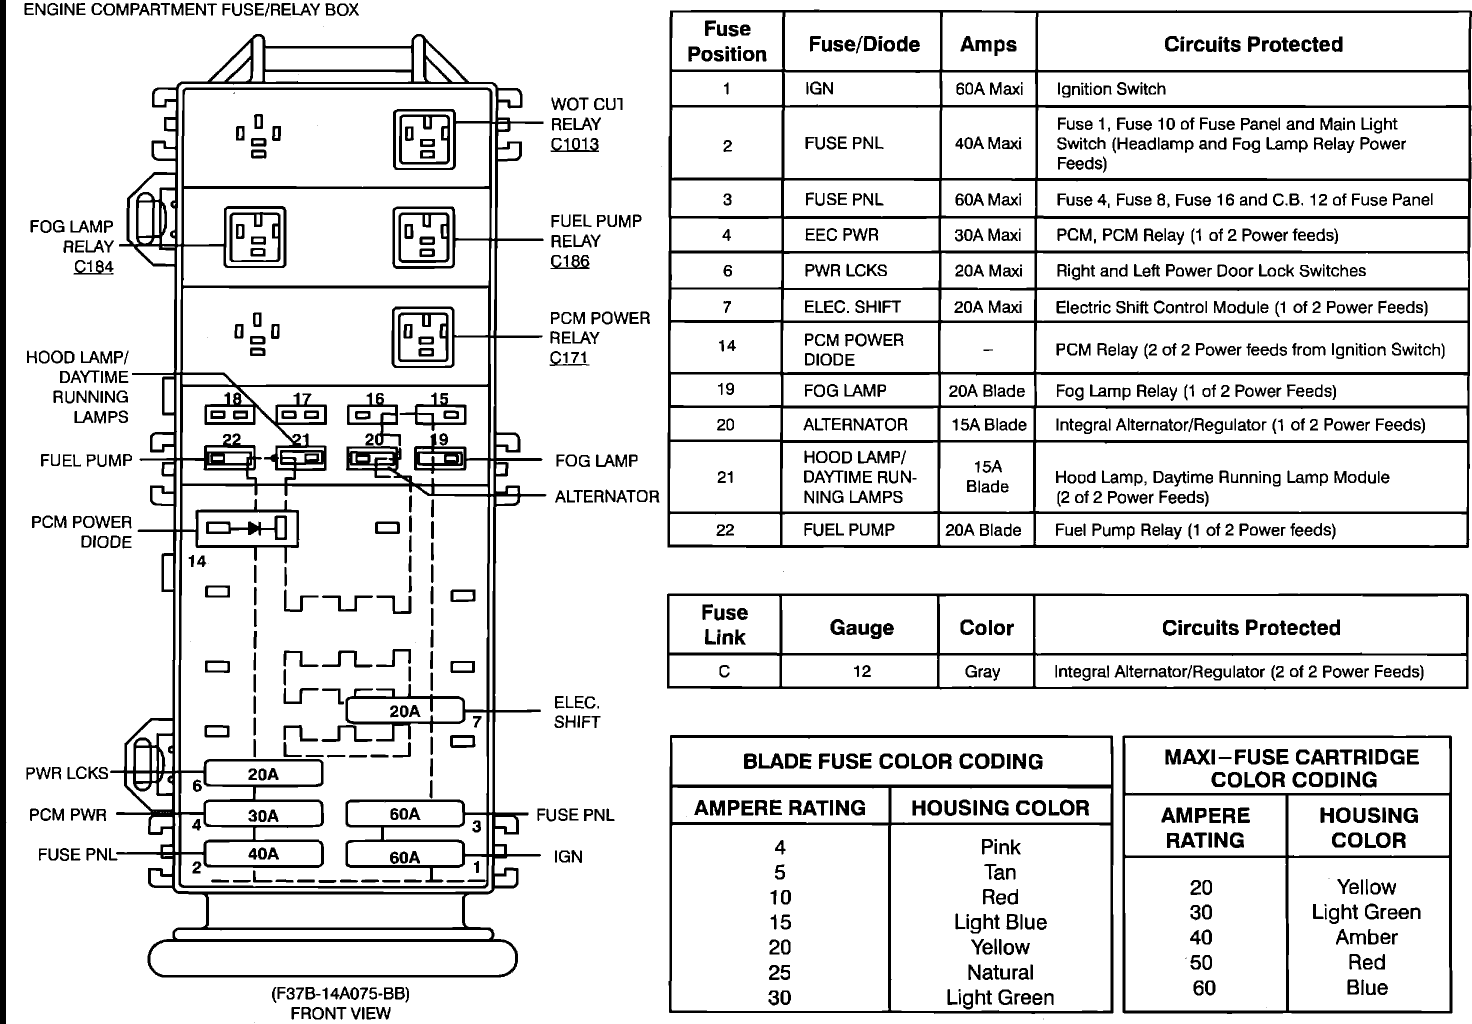 94 Explorer Fuse Box - Geo Metro Radio Wiring Diagram for Wiring Diagram  SchematicsWiring Diagram Schematics